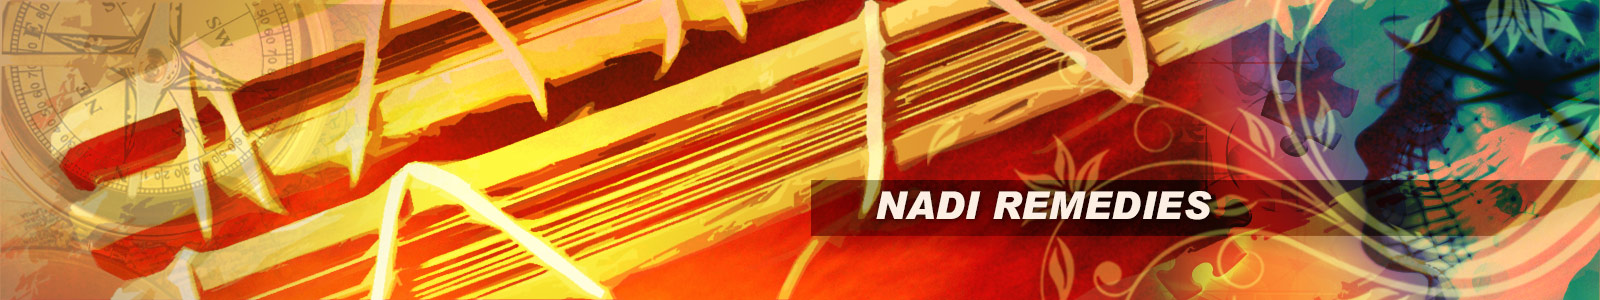 What are Nadi Remedies?